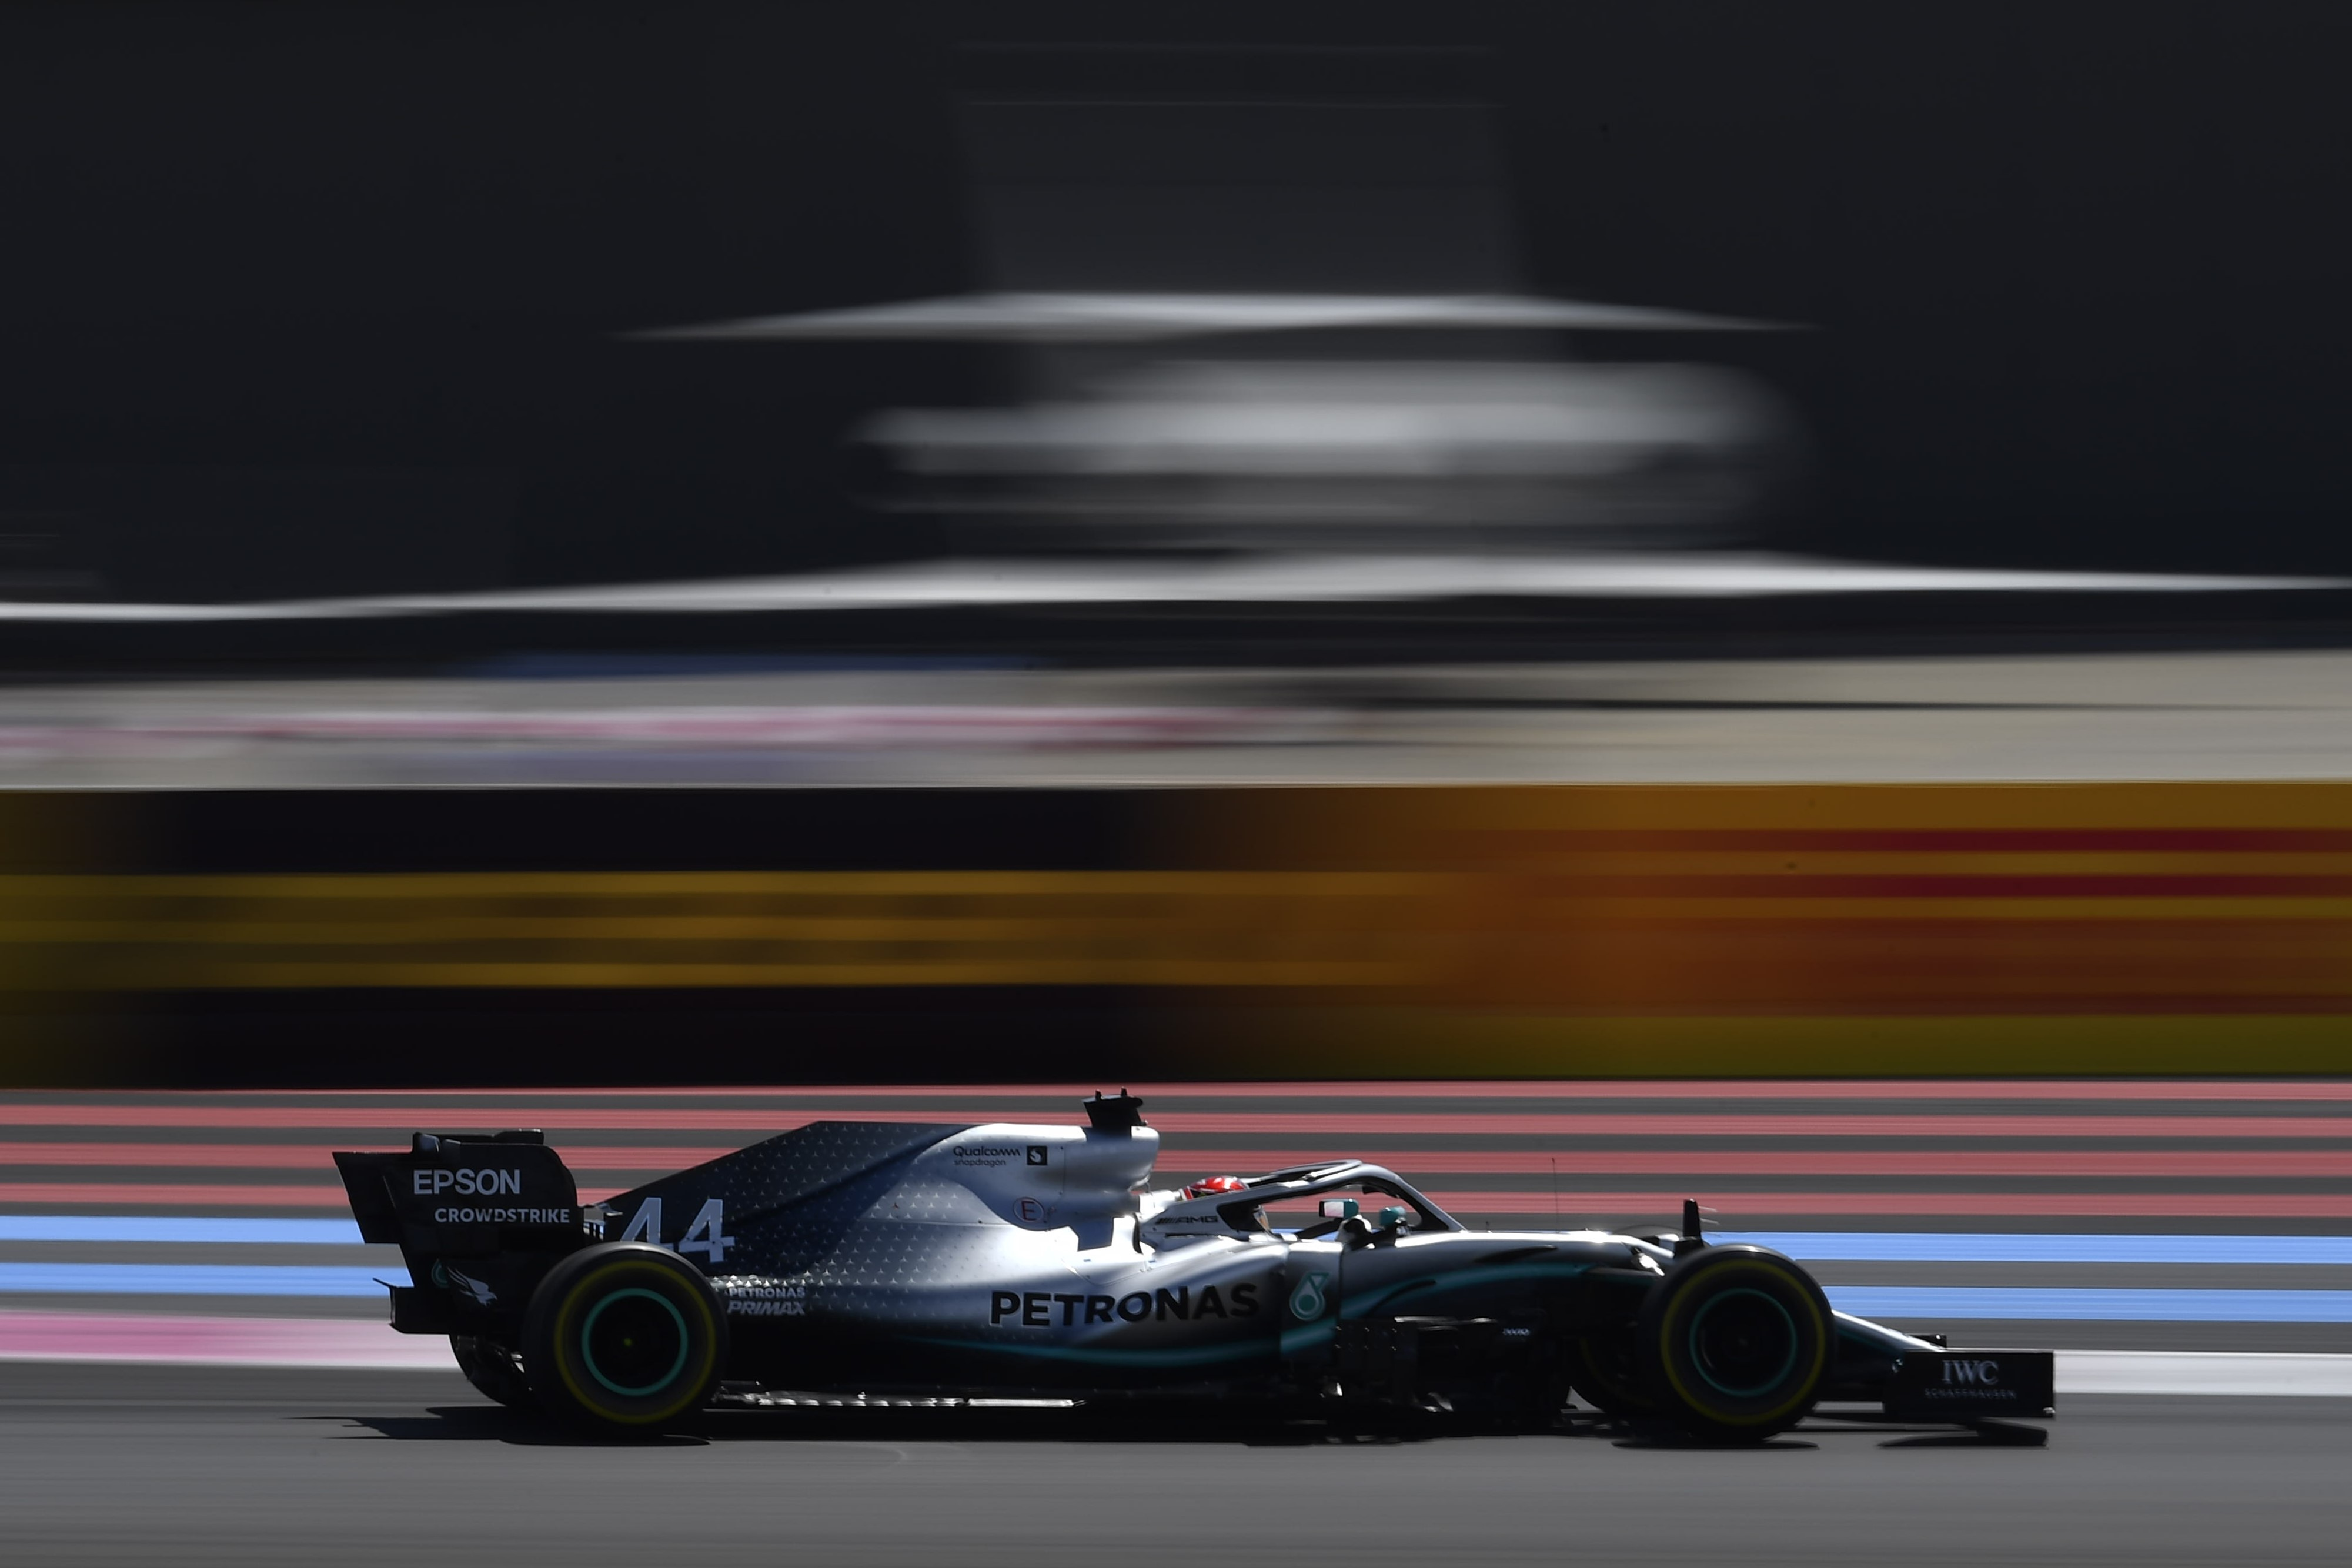 Lewis Hamilton (Mercedes) au Grand Prix de France 2019